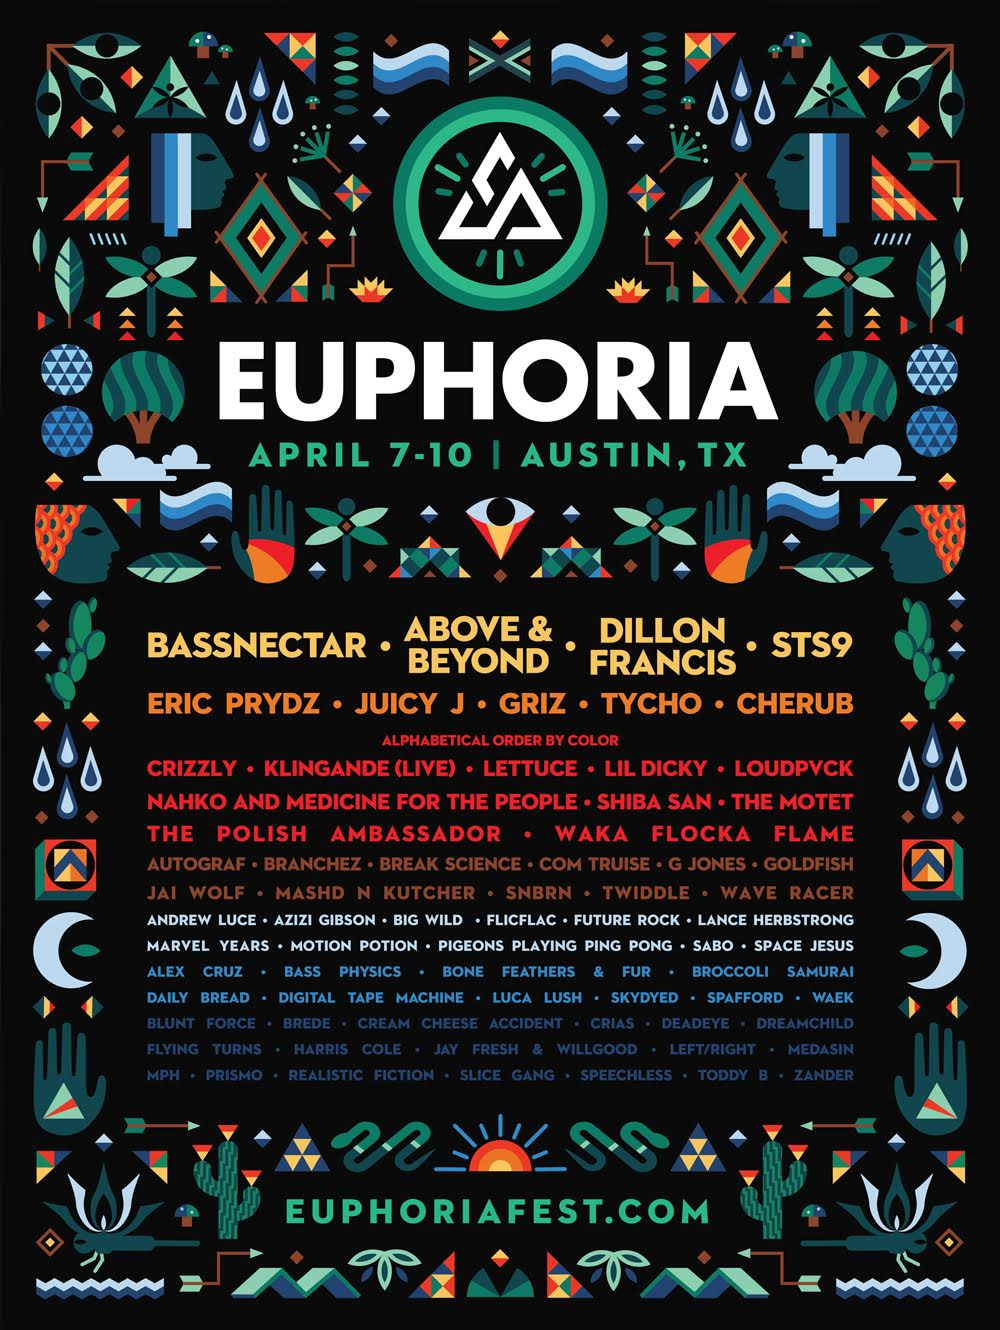 All content is property of Euphoria Music Festival and does not belong to Electric Feels.